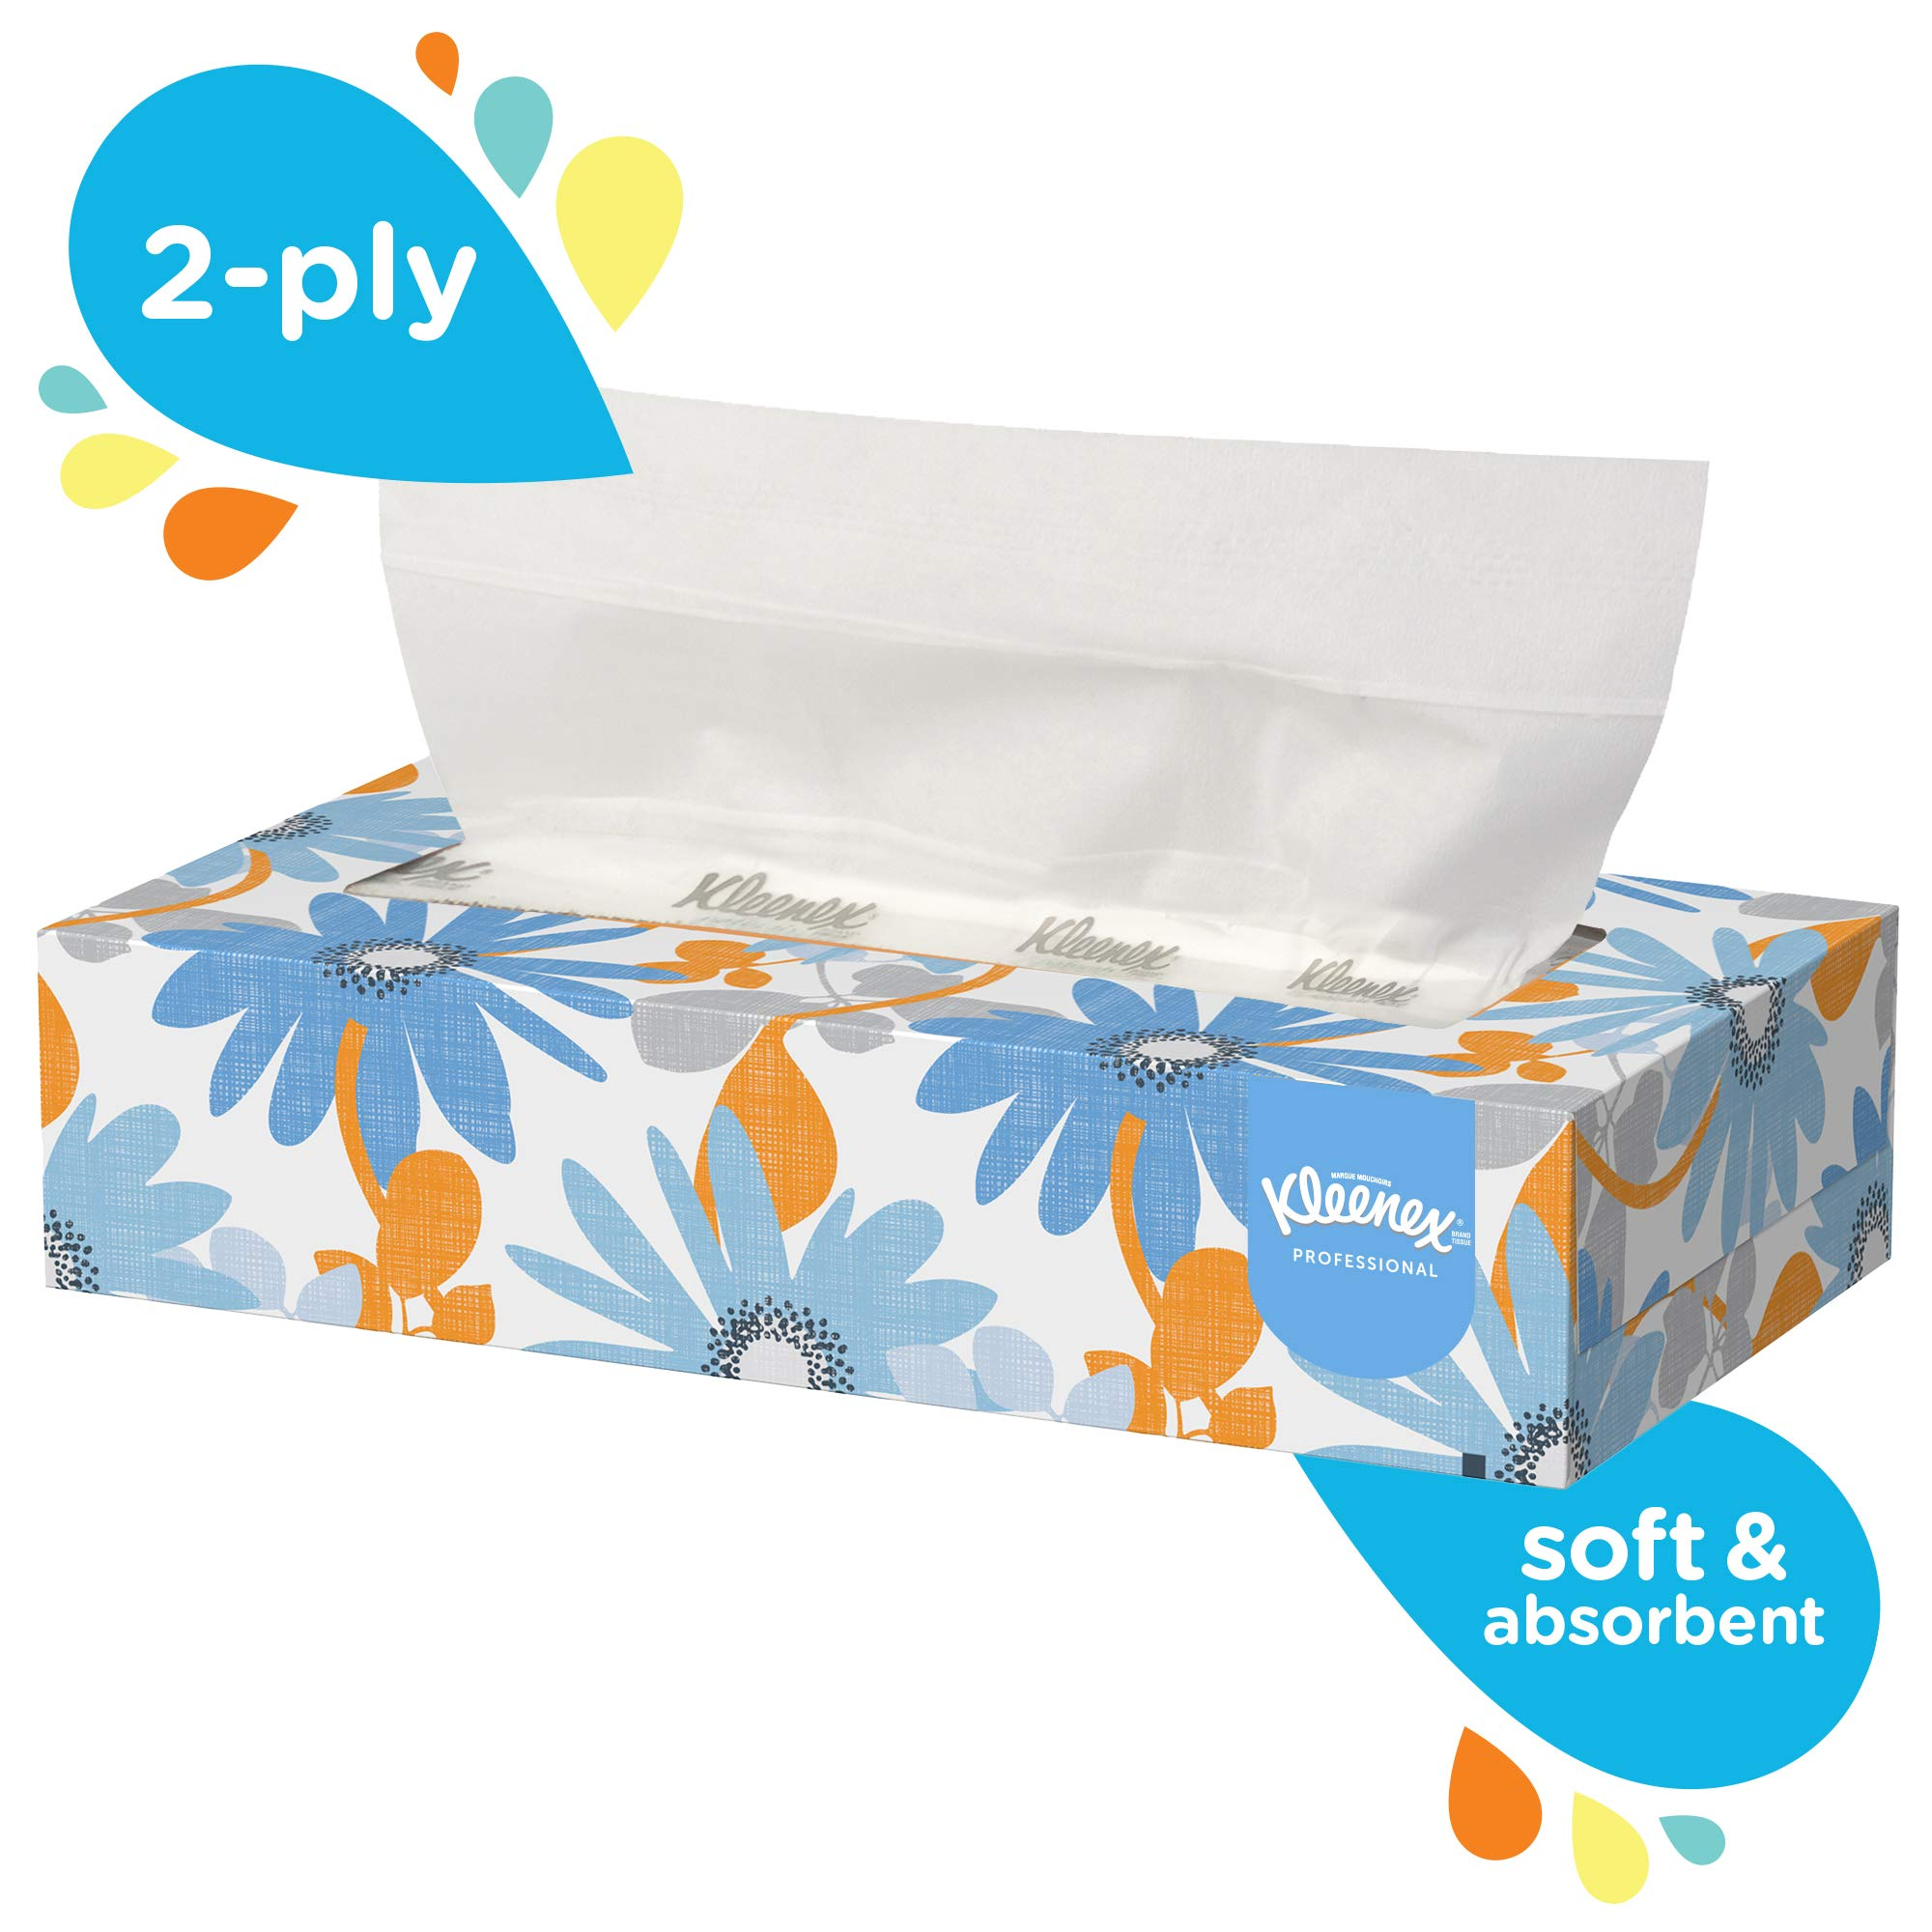 Kleenex Professional Facial Tissue for Business (13216), Flat Tissue Boxes, 60 Boxes/Case, 100 Tissues/Box by Kimberly-Clark Professional (Image #5)